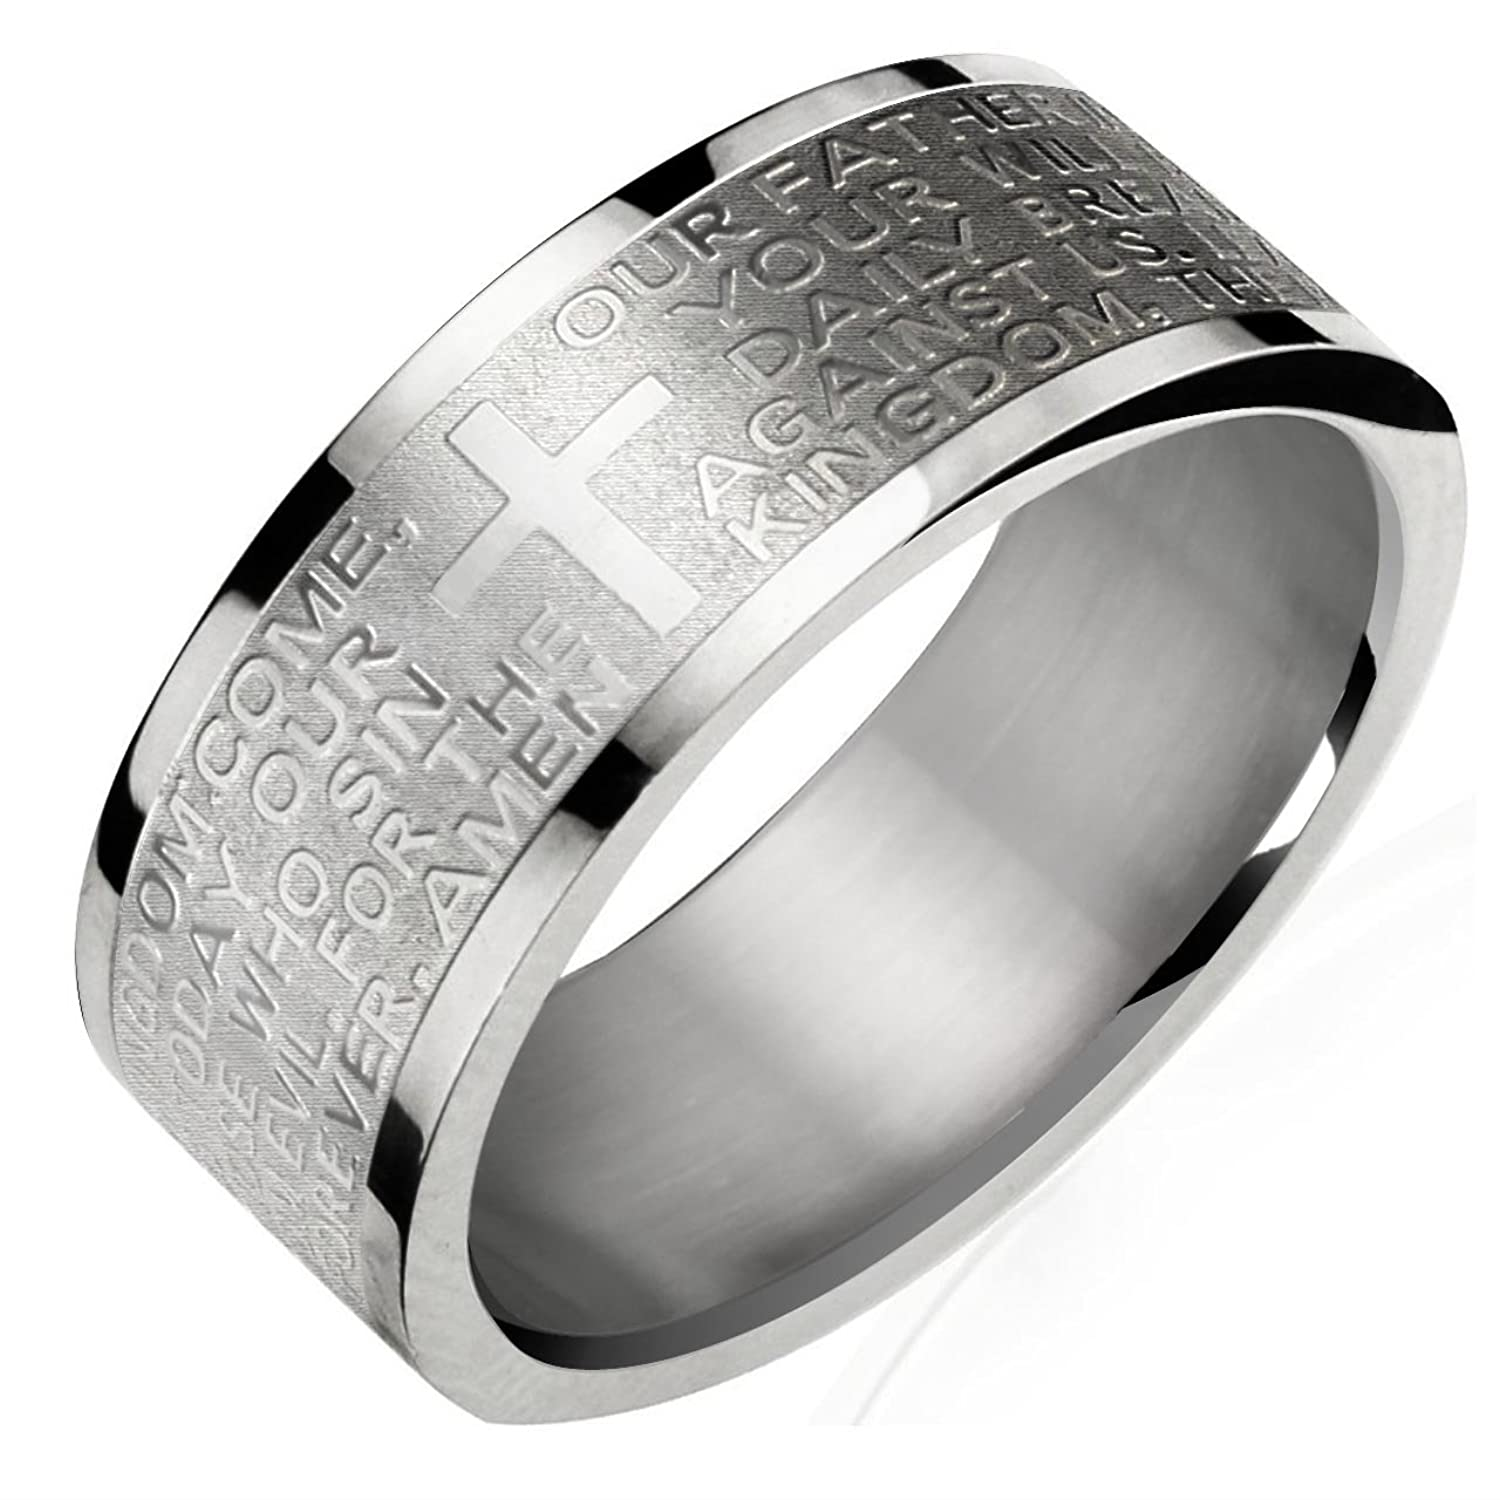 d jewellery product matt ring polished webstore h mens number titanium s samuel men